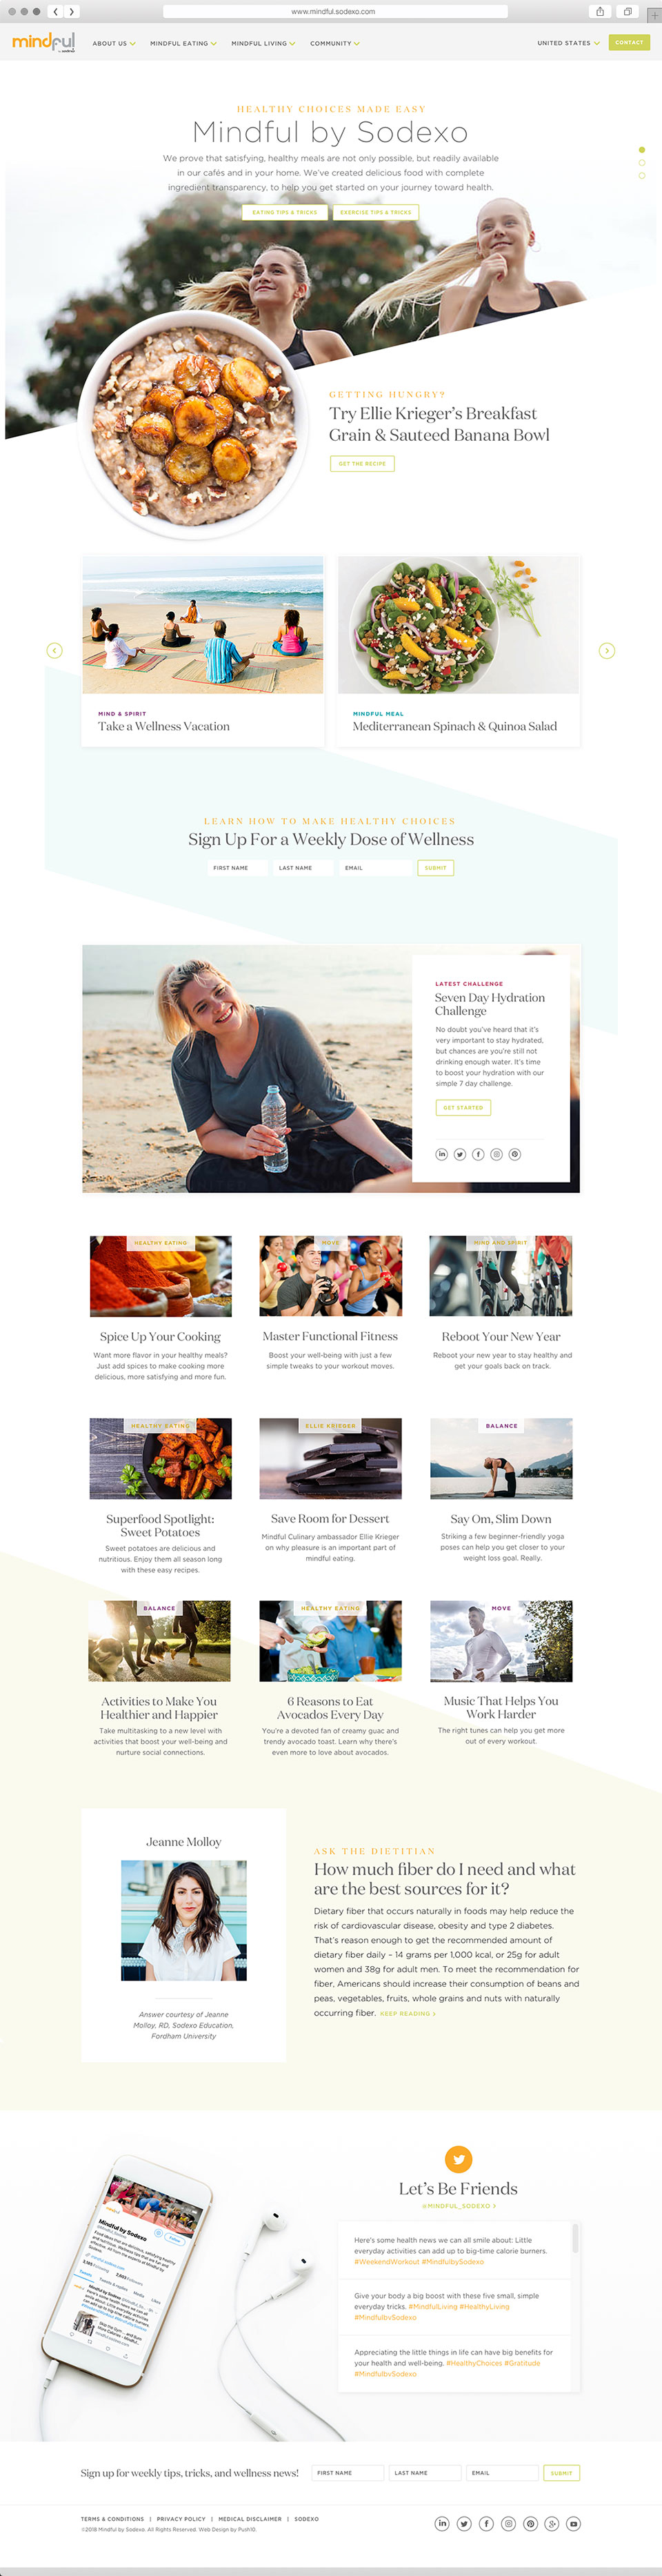 Web Design for Sodexo, a Healthy Living Brand